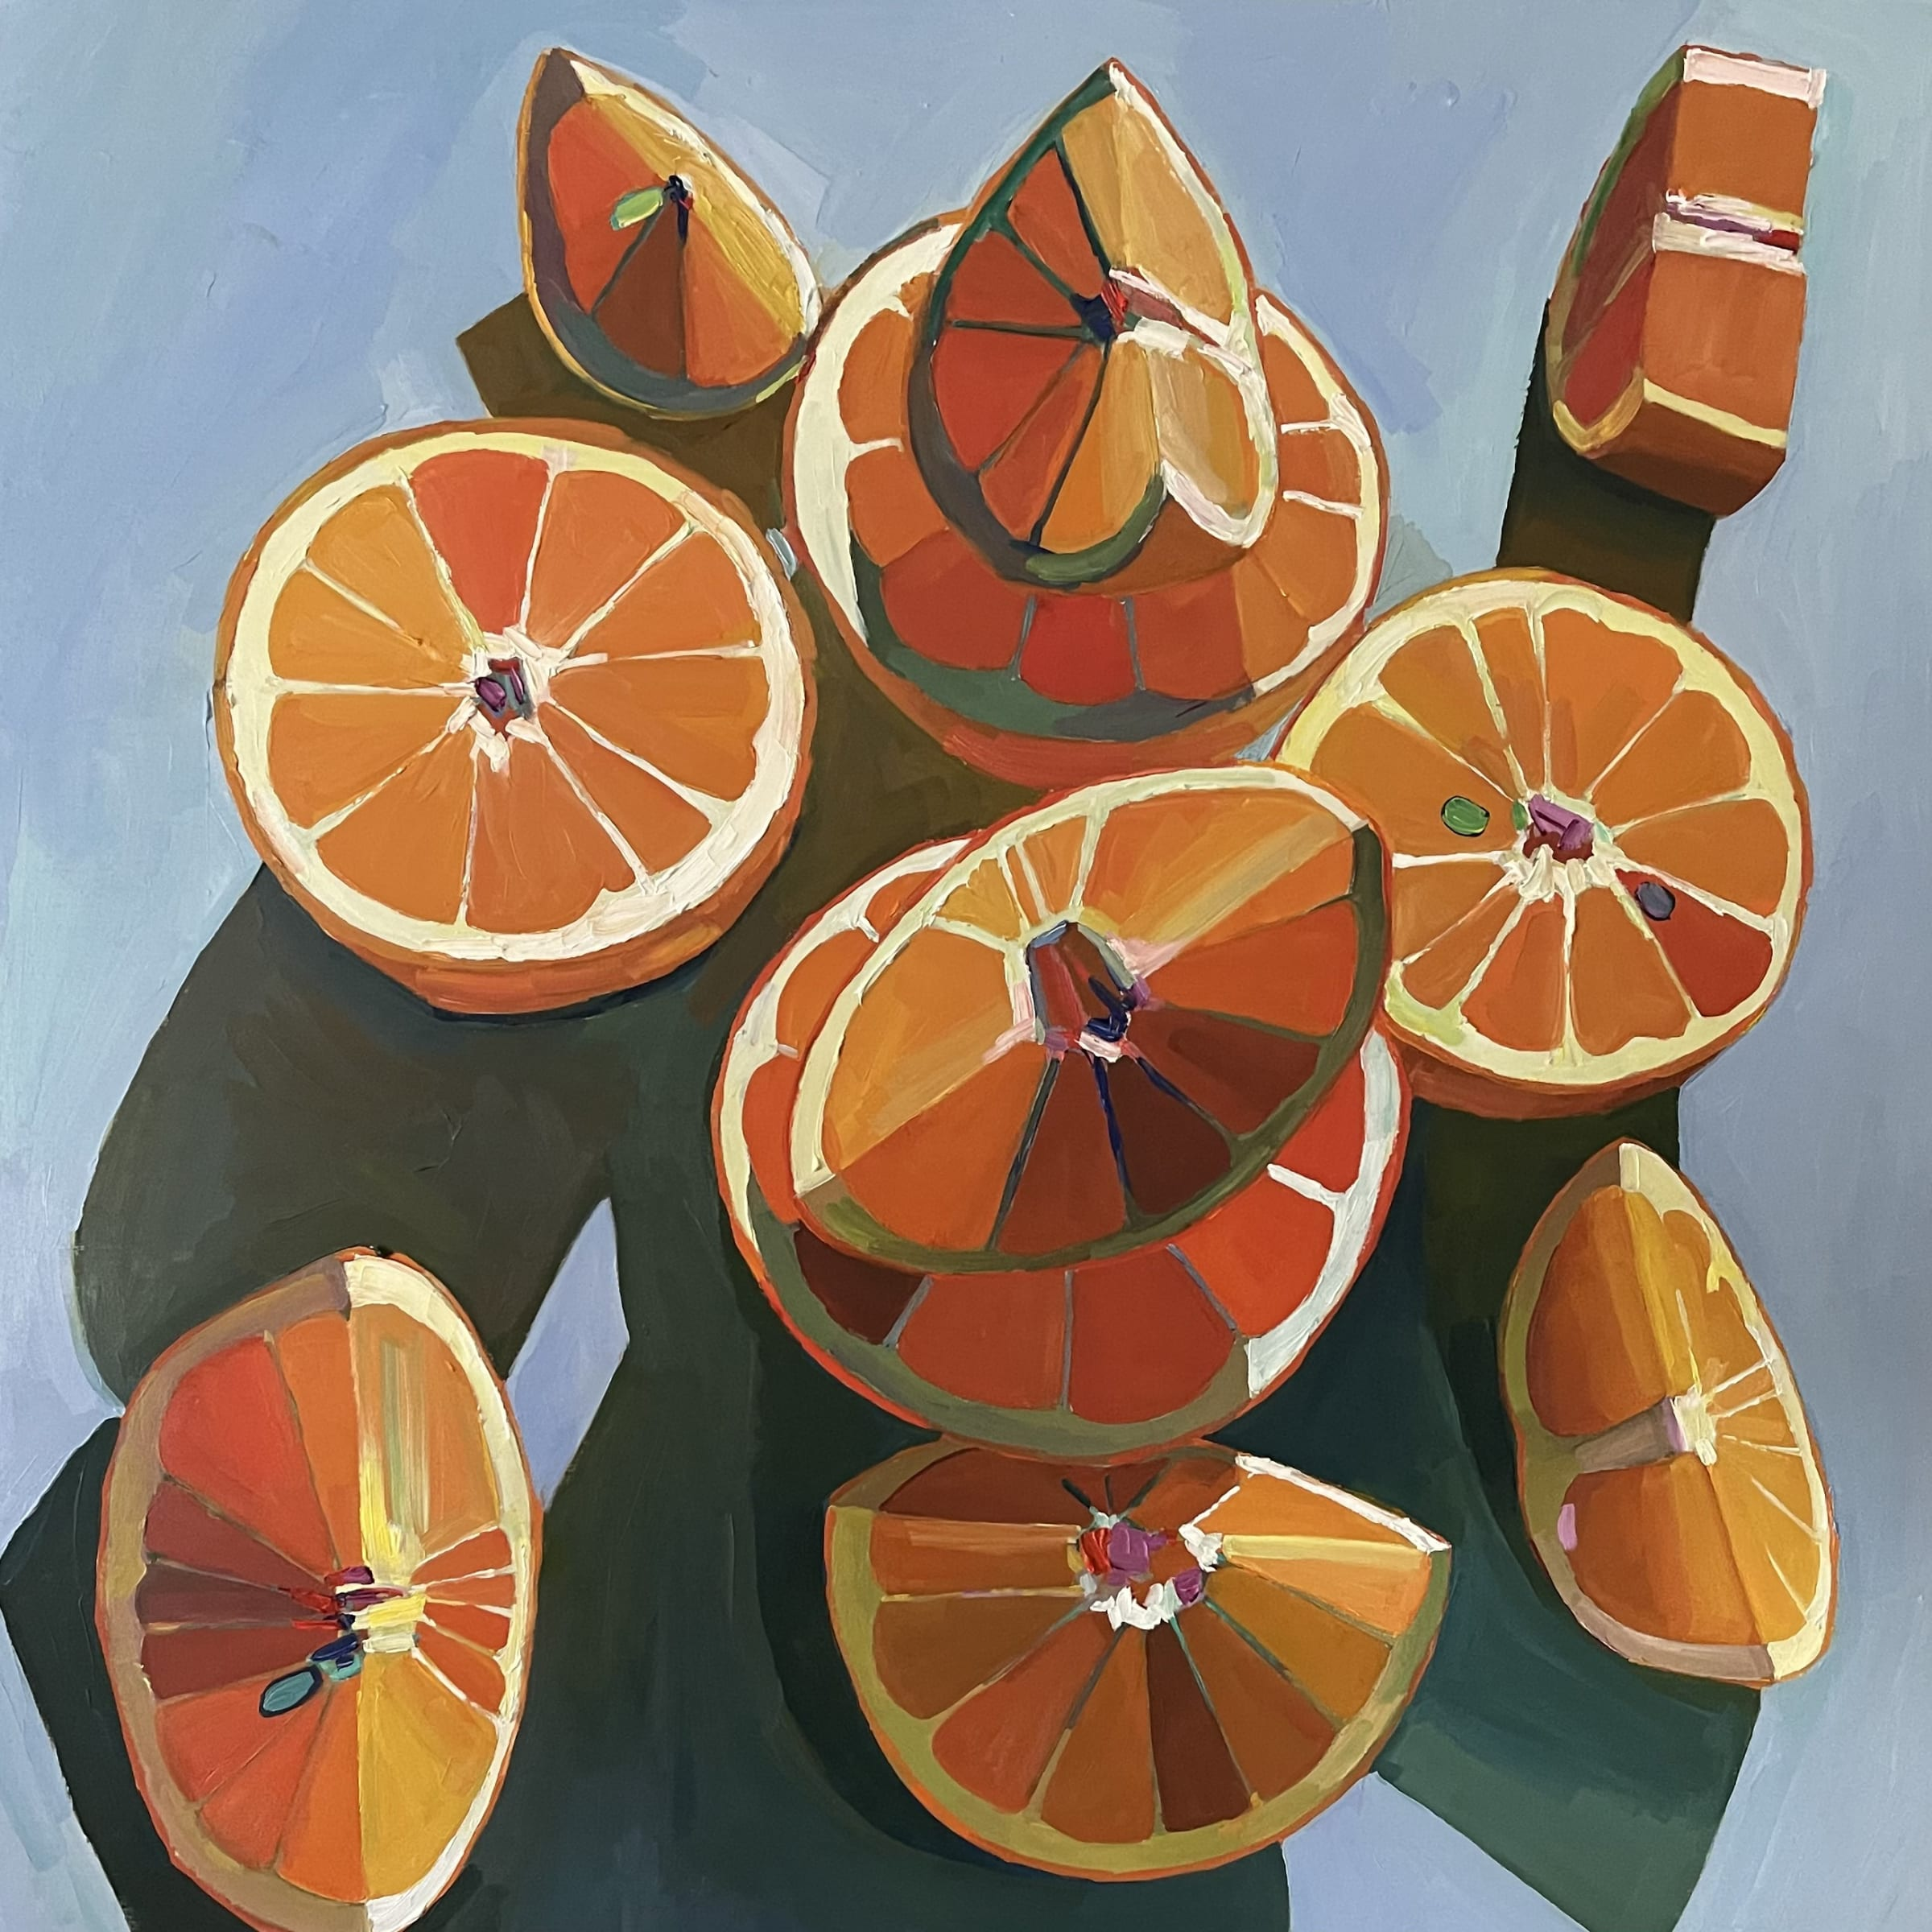 """<span class=""""link fancybox-details-link""""><a href=""""/artists/97-erika-lee-sears/works/1408-erika-lee-sears-orange-a-peel/"""">View Detail Page</a></span><div class=""""artist""""><strong>Erika Lee Sears</strong></div> <div class=""""title""""><em>Orange a Peel</em></div> <div class=""""medium"""">Oil on panel</div> <div class=""""dimensions"""">24 x 24 inches</div>"""